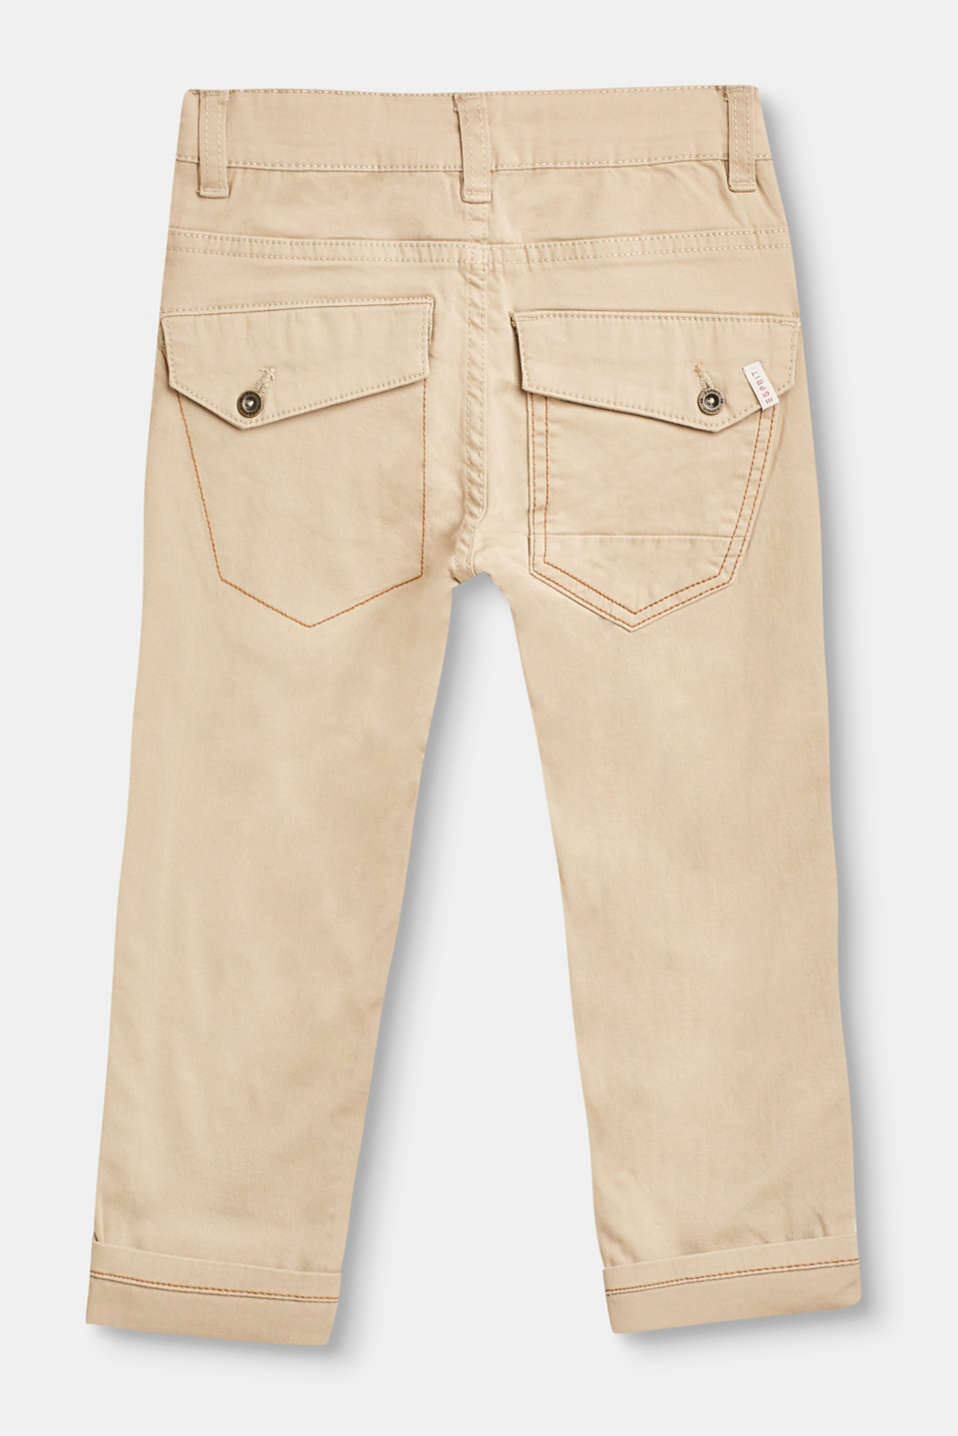 Cotton trousers with stretch for comfort